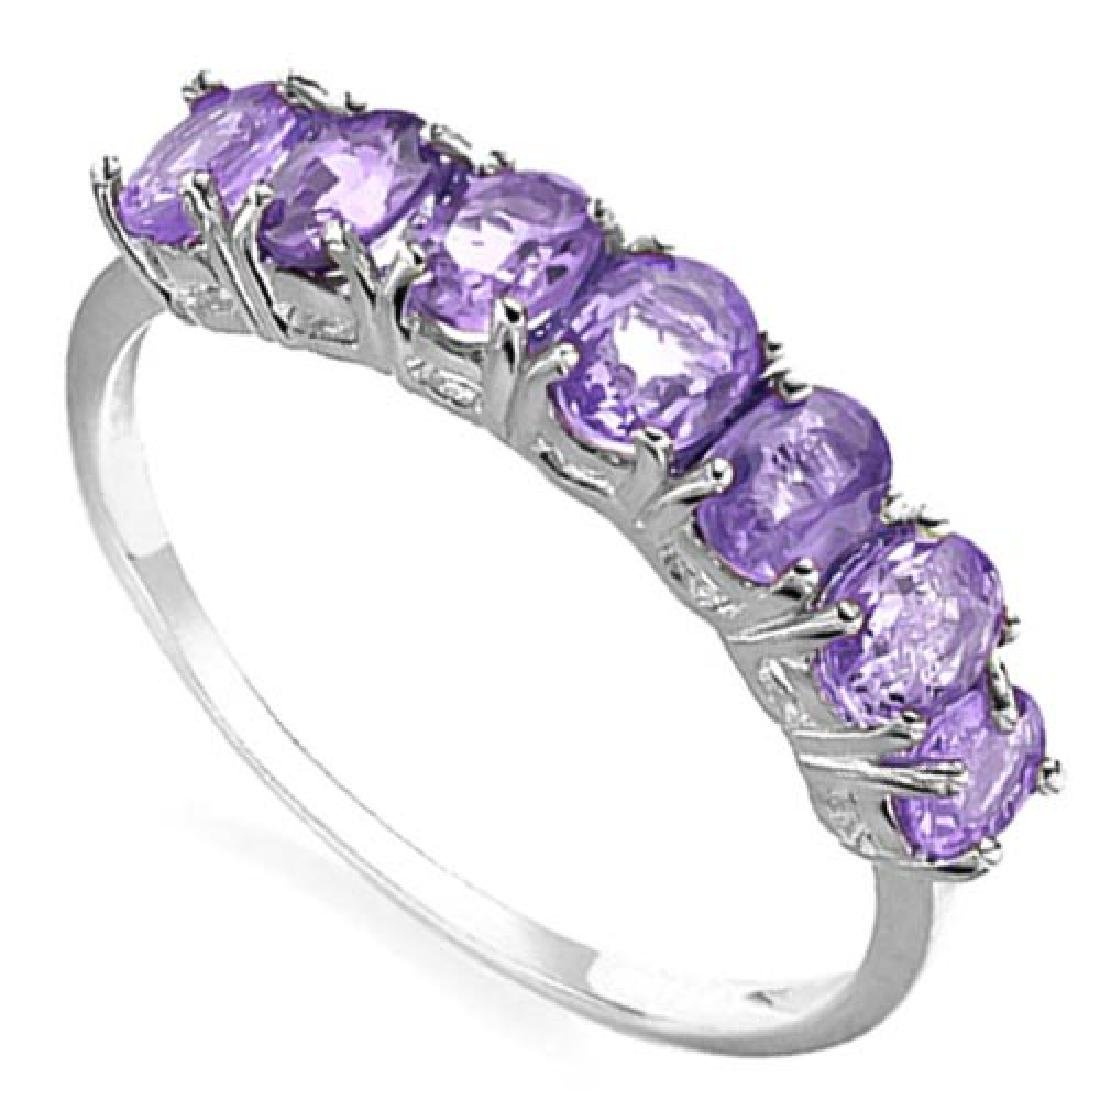 1.17 CTW GENUINE AMETHYST 10KT SOLID WHITE GOLD RING